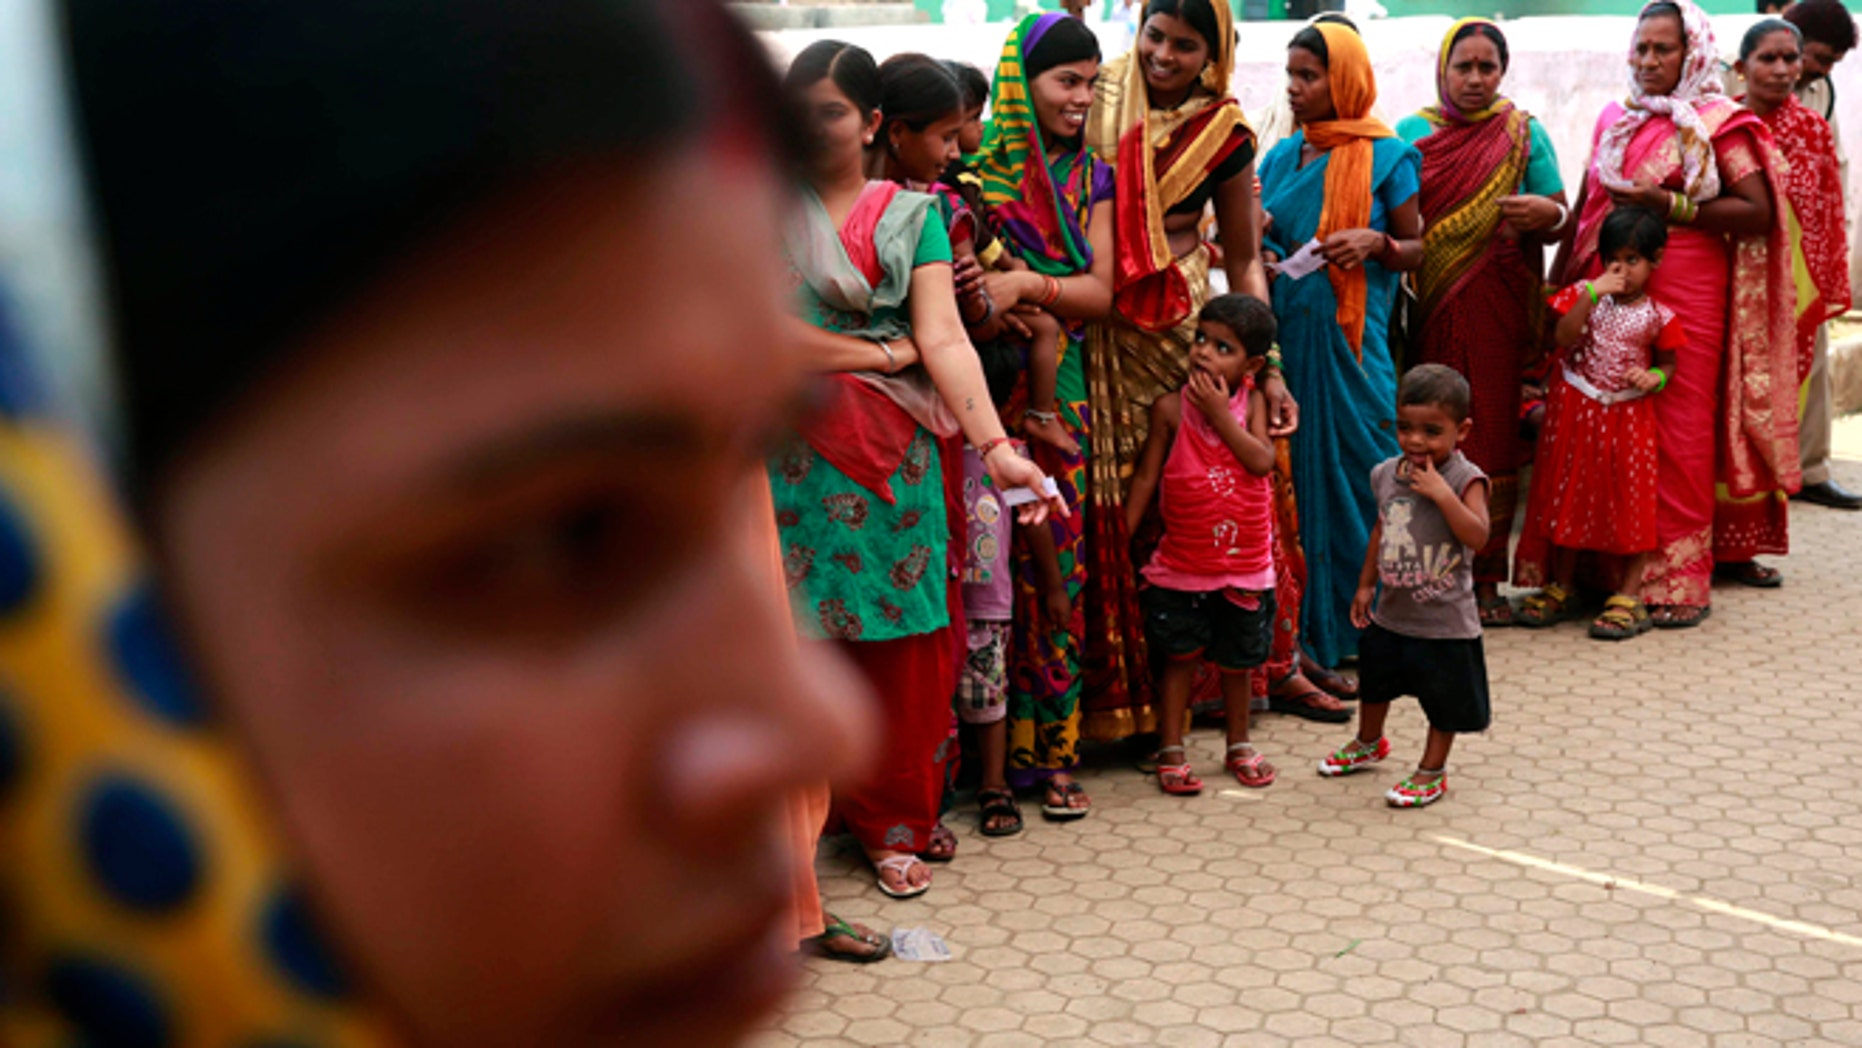 April 17, 2014: Indian women stand in a queue to cast their votes in Rajnandgaon, in the central Indian state of Chhattisgarh, now the center of India's four-decade Maoist insurgency.